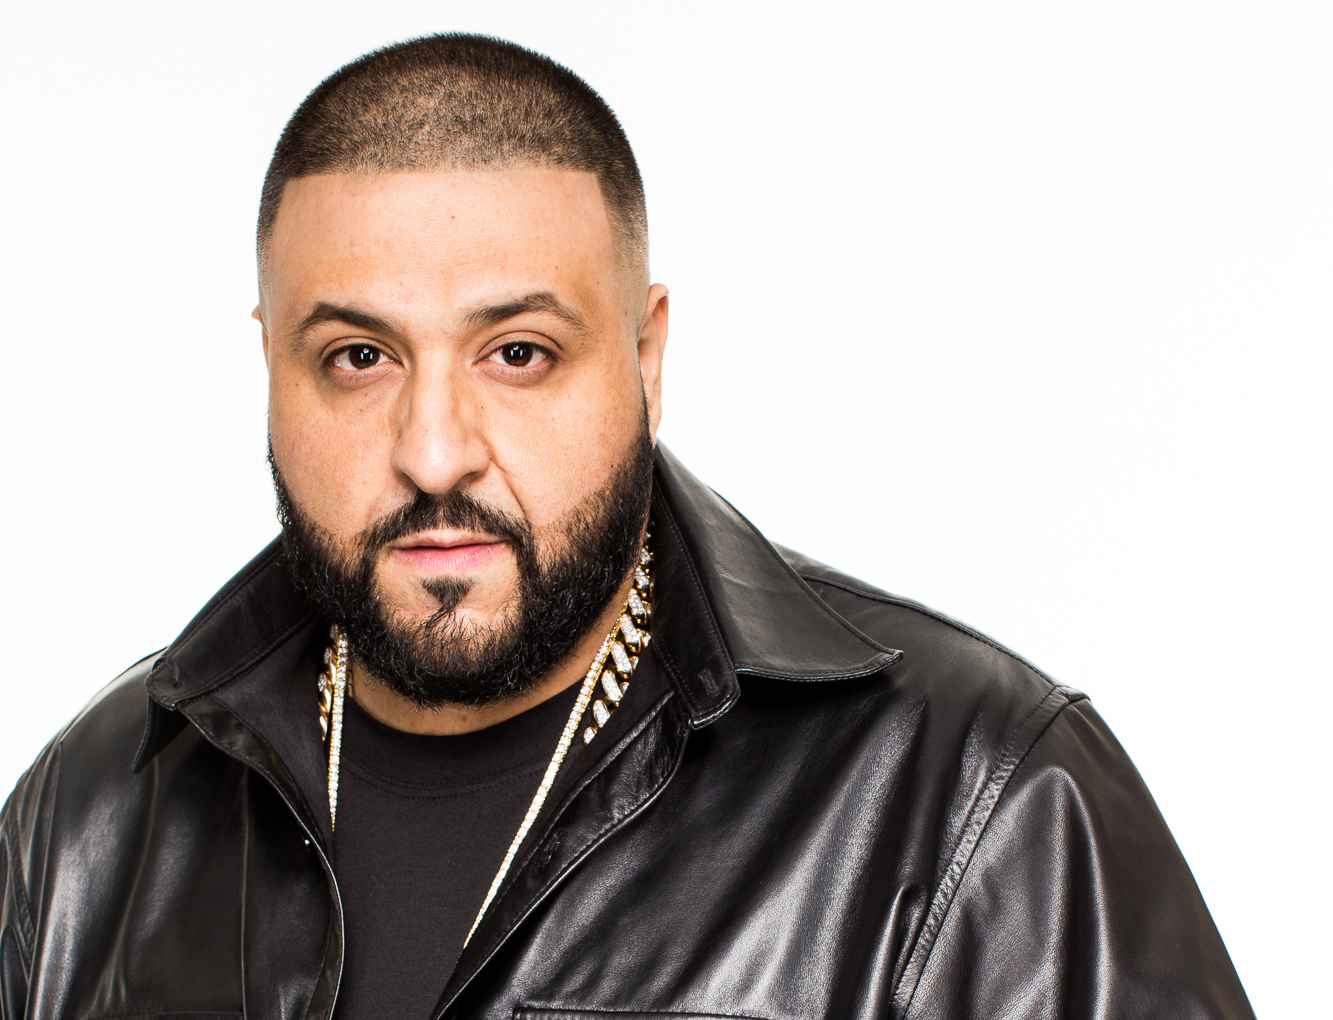 616f0eb73a87 Dj Khaled   We The Best Music Group Signed To Epic Records ...